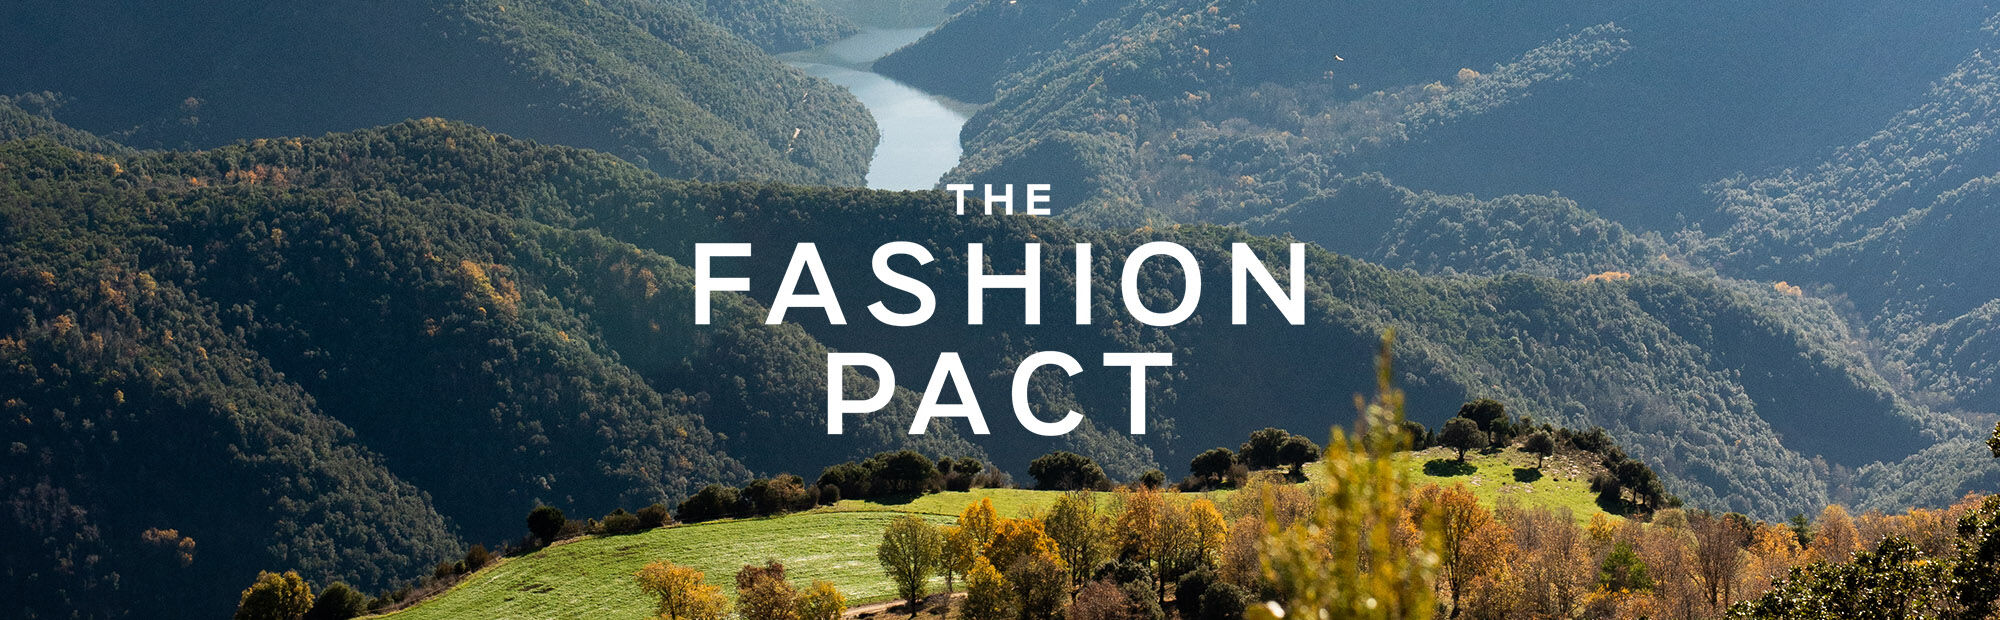 Desigual becomes a member of The Fashion Pact and sets new sustainability goals